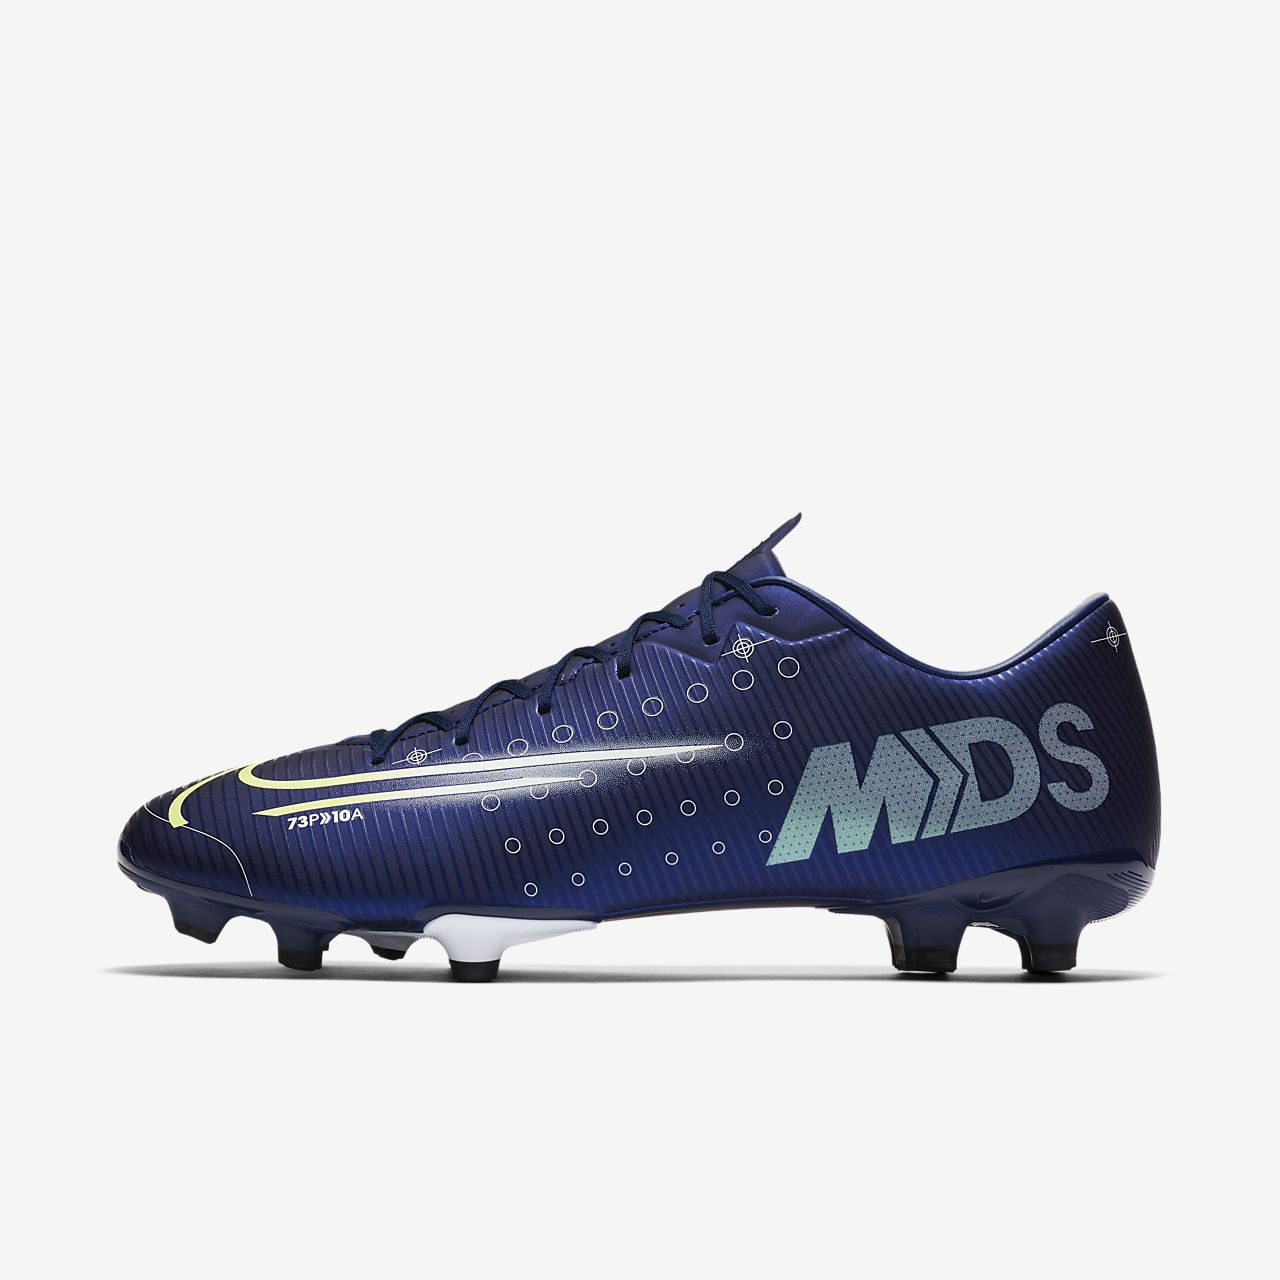 Nike Mercurial Vapor 13 Academy MDS MG Multi Ground Football Boot